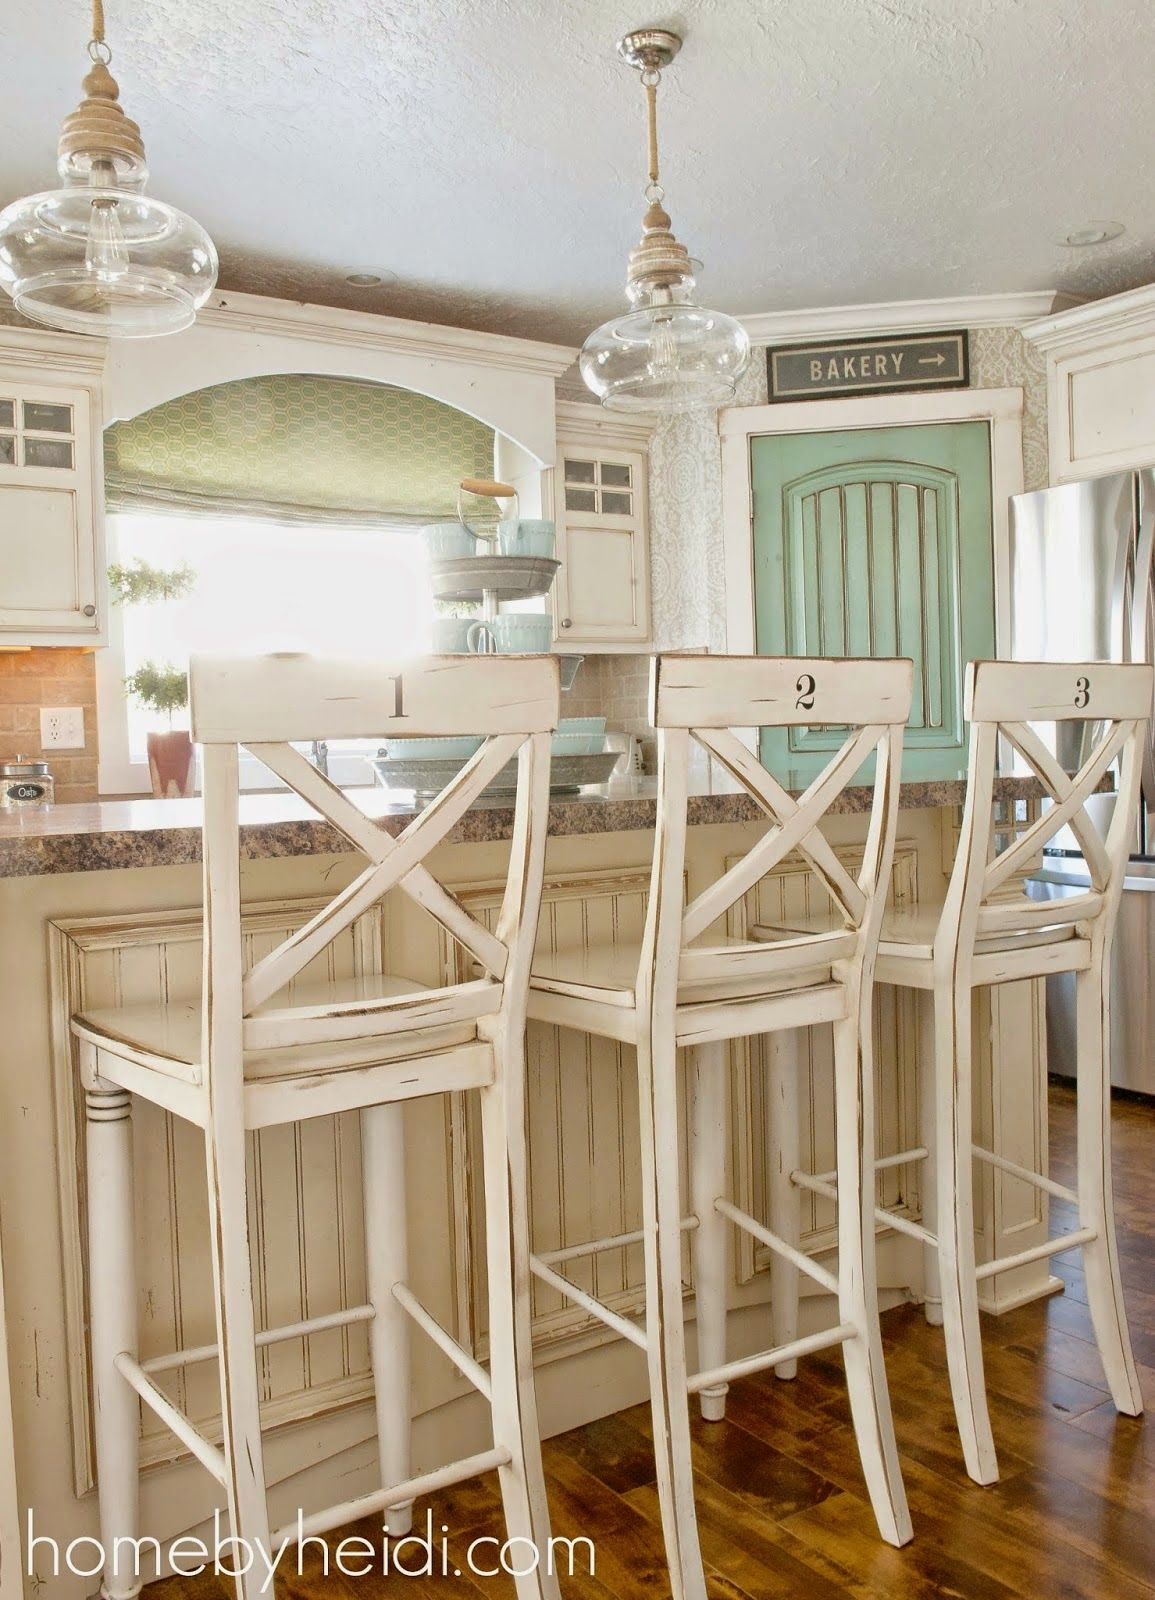 Awe Inspiring Updated Kitchen Homebyheidi Com Rustic Kitchen Home Home Caraccident5 Cool Chair Designs And Ideas Caraccident5Info